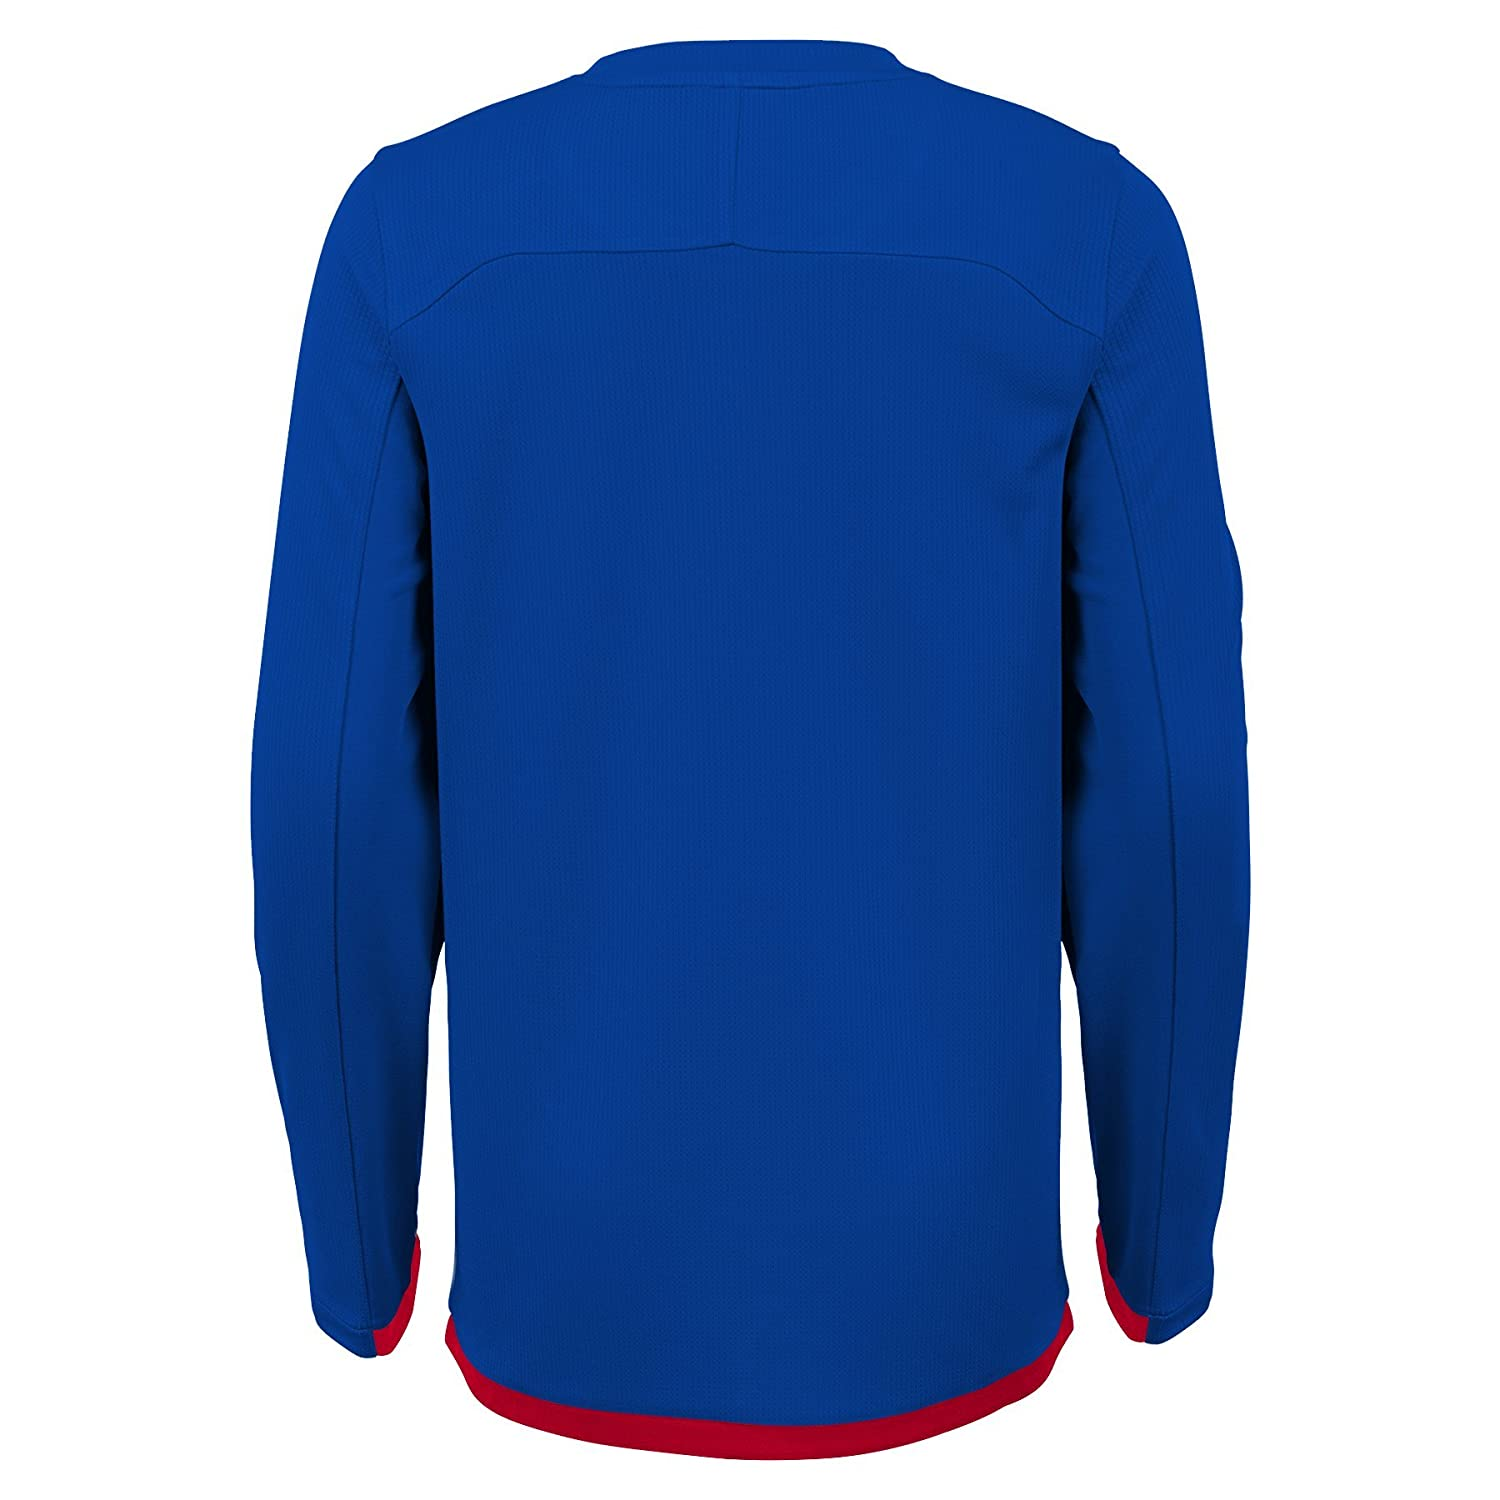 Youth Large Outerstuff NFL Buffalo Bills Kids /& Youth Boys Mainframe Performance Tee Royal 14-16